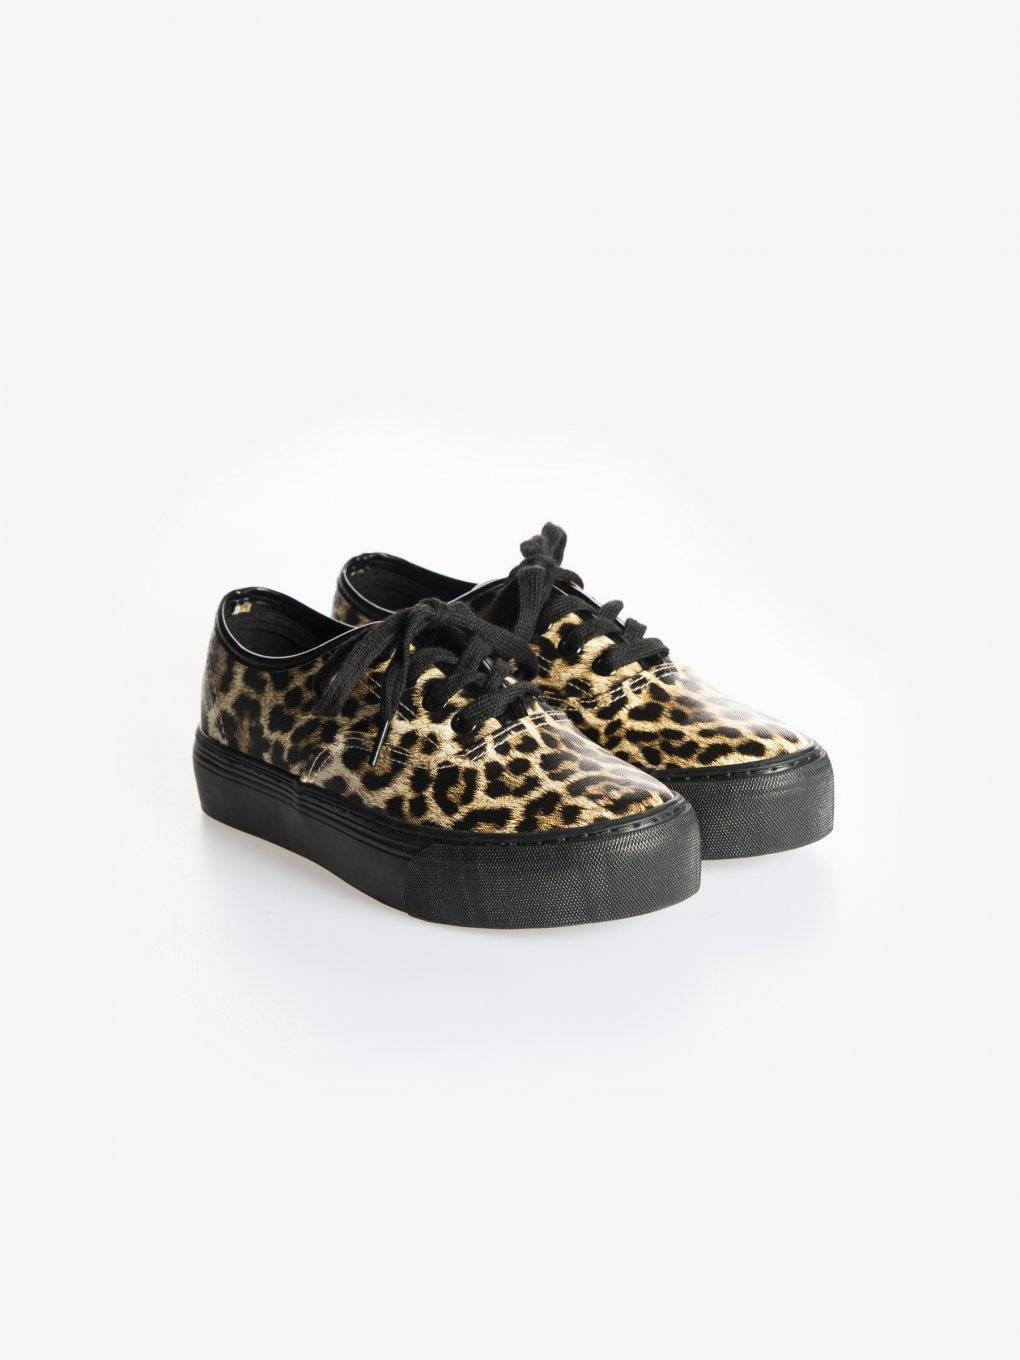 Animal design platform sneakers